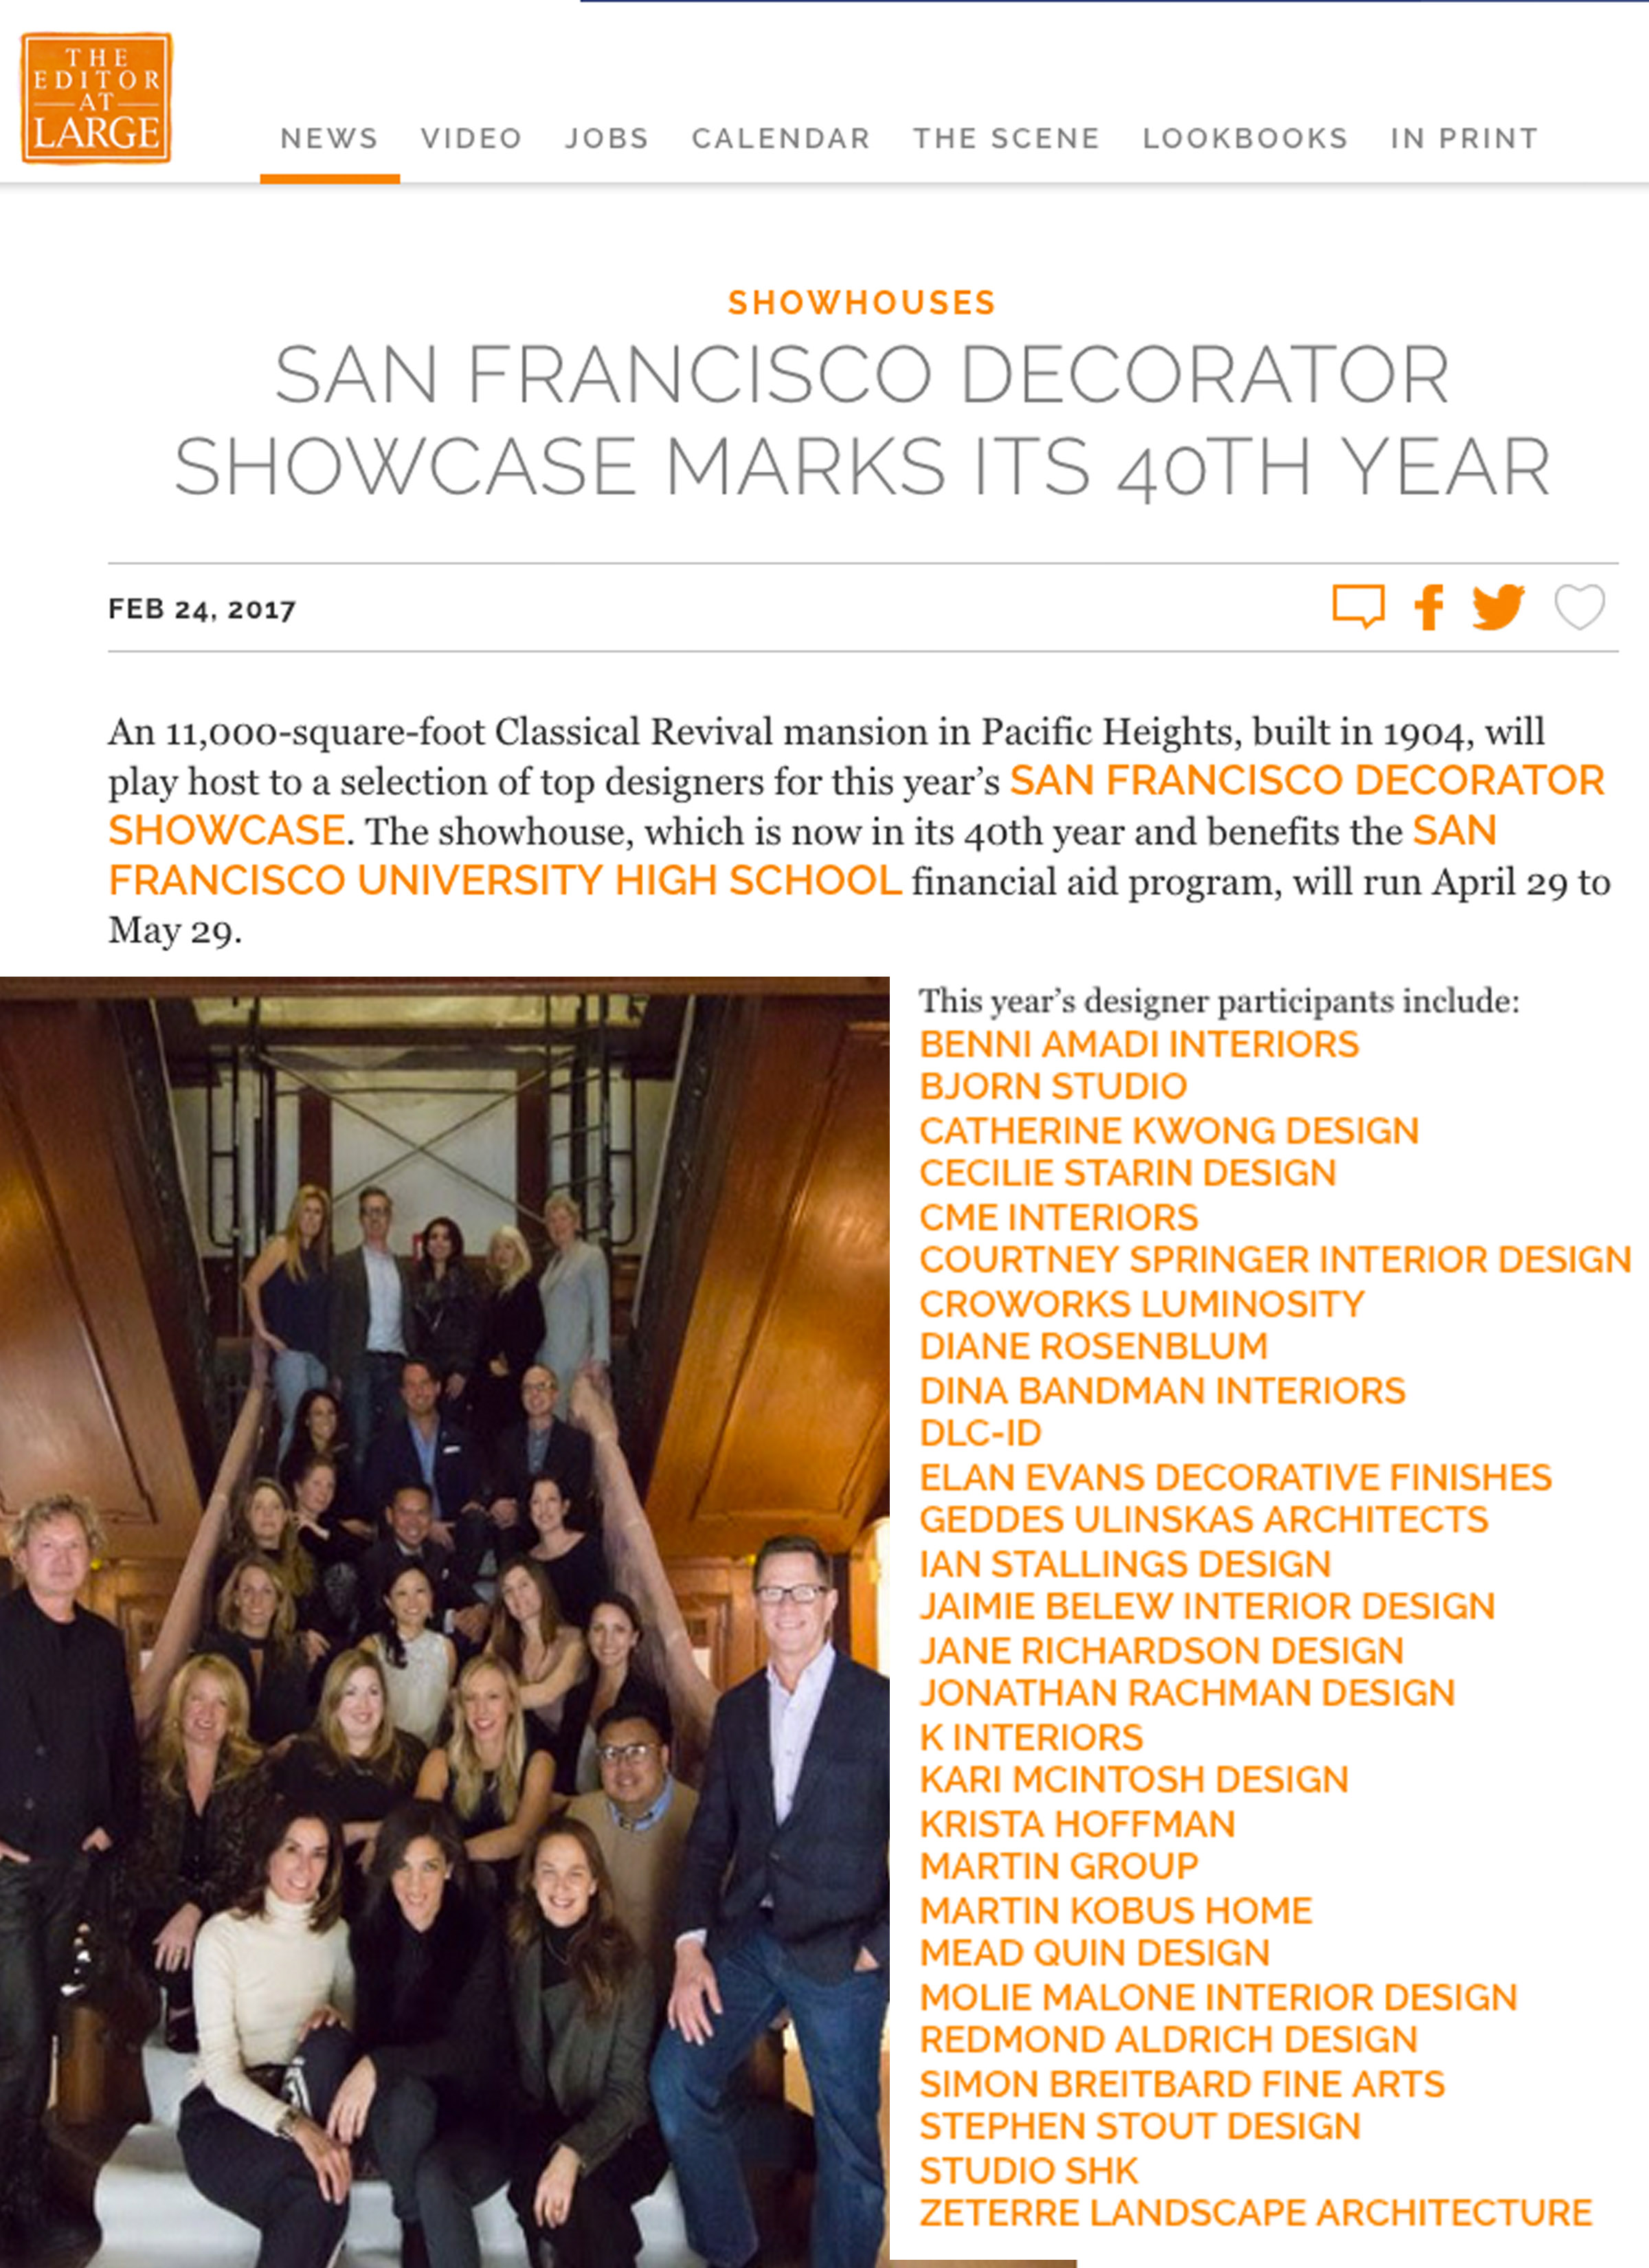 Editor at Large - EditorAtLarge.com spotlights this year's SF Decorator Showcase designers.